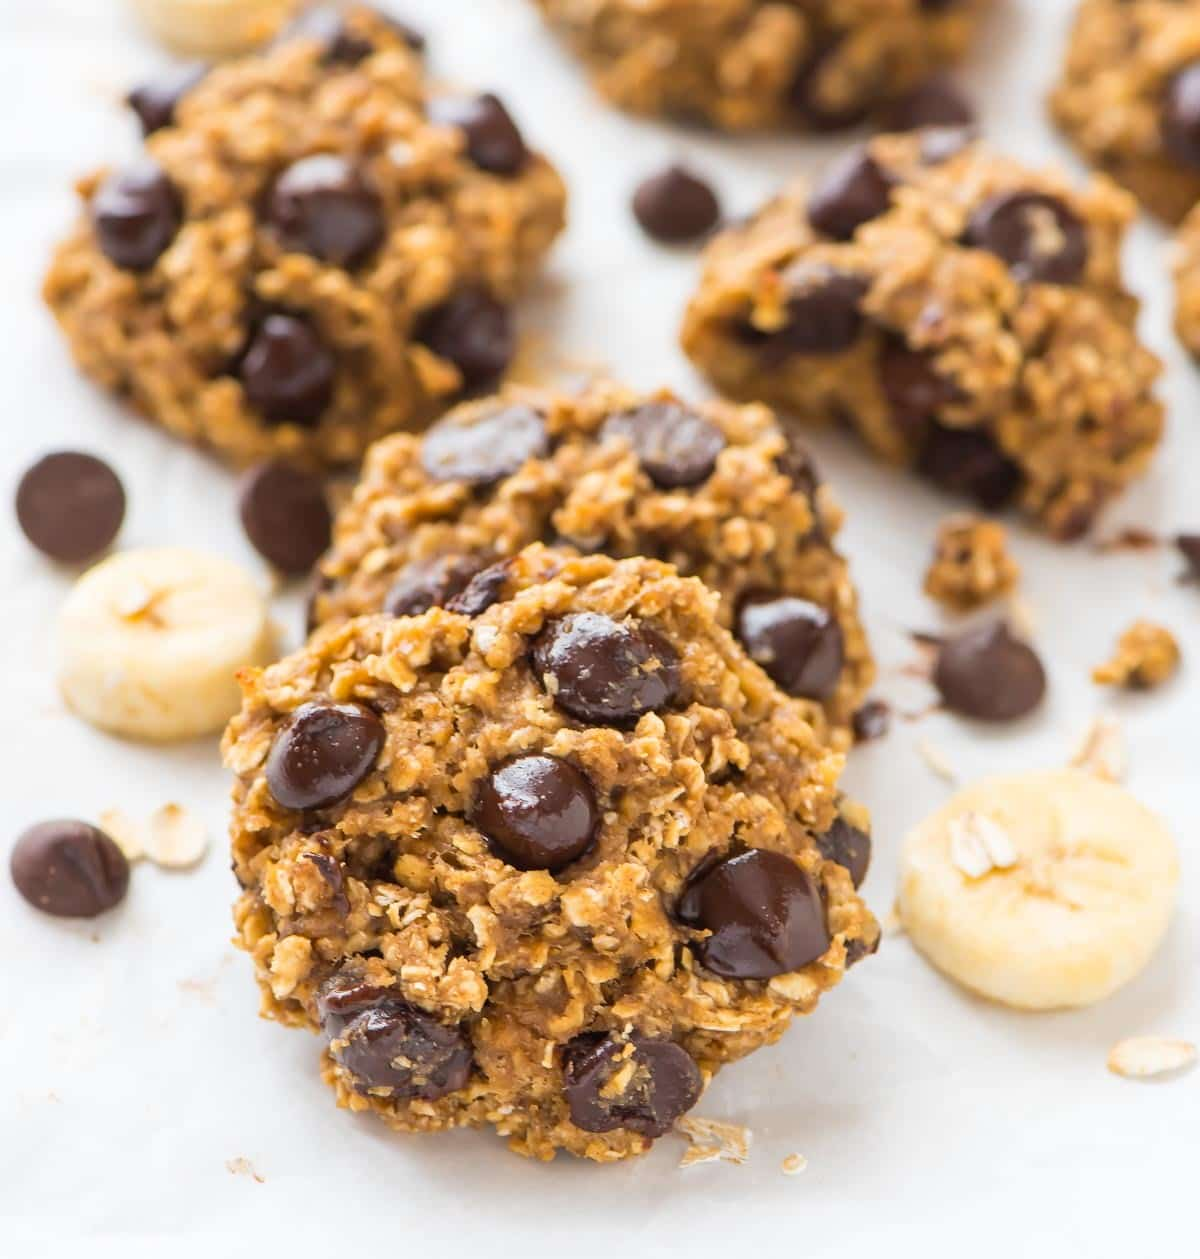 PERFECT soft and chewy Oatmeal Banana Chocolate Chip Cookies. NO BUTTER! Banana makes them naturally moist and sweet. Healthy recipe for kids or anytime you need a sweet fix. Recipe at wellplated.com | @wellplated